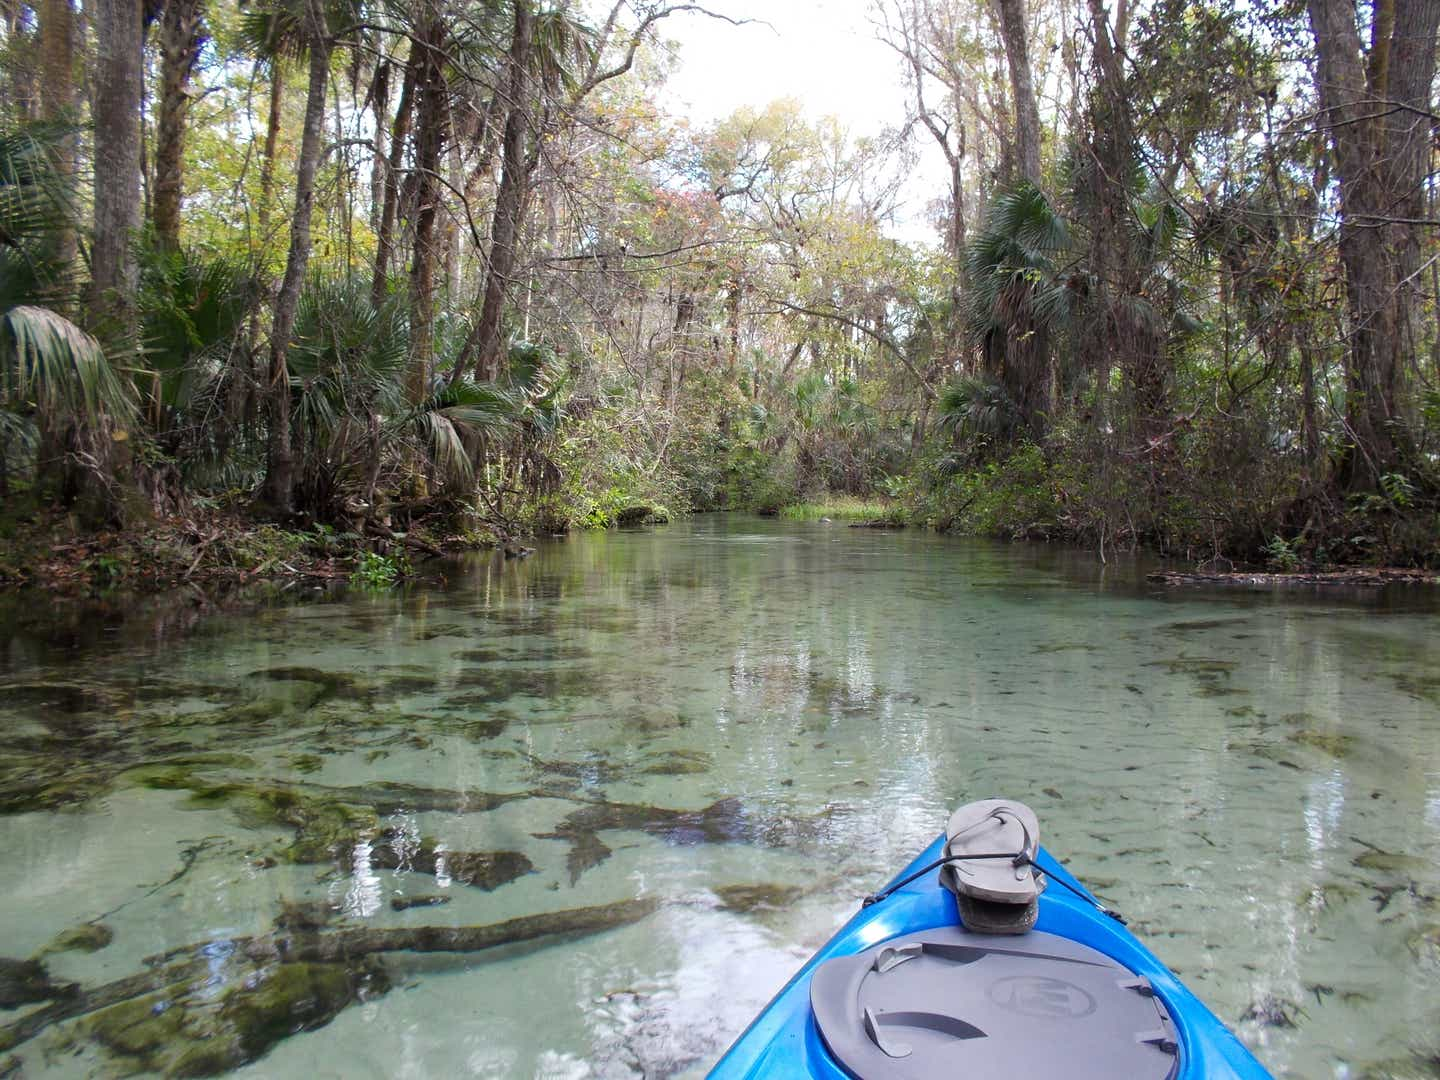 Kayak in the water at Florida's Wekiwa Springs